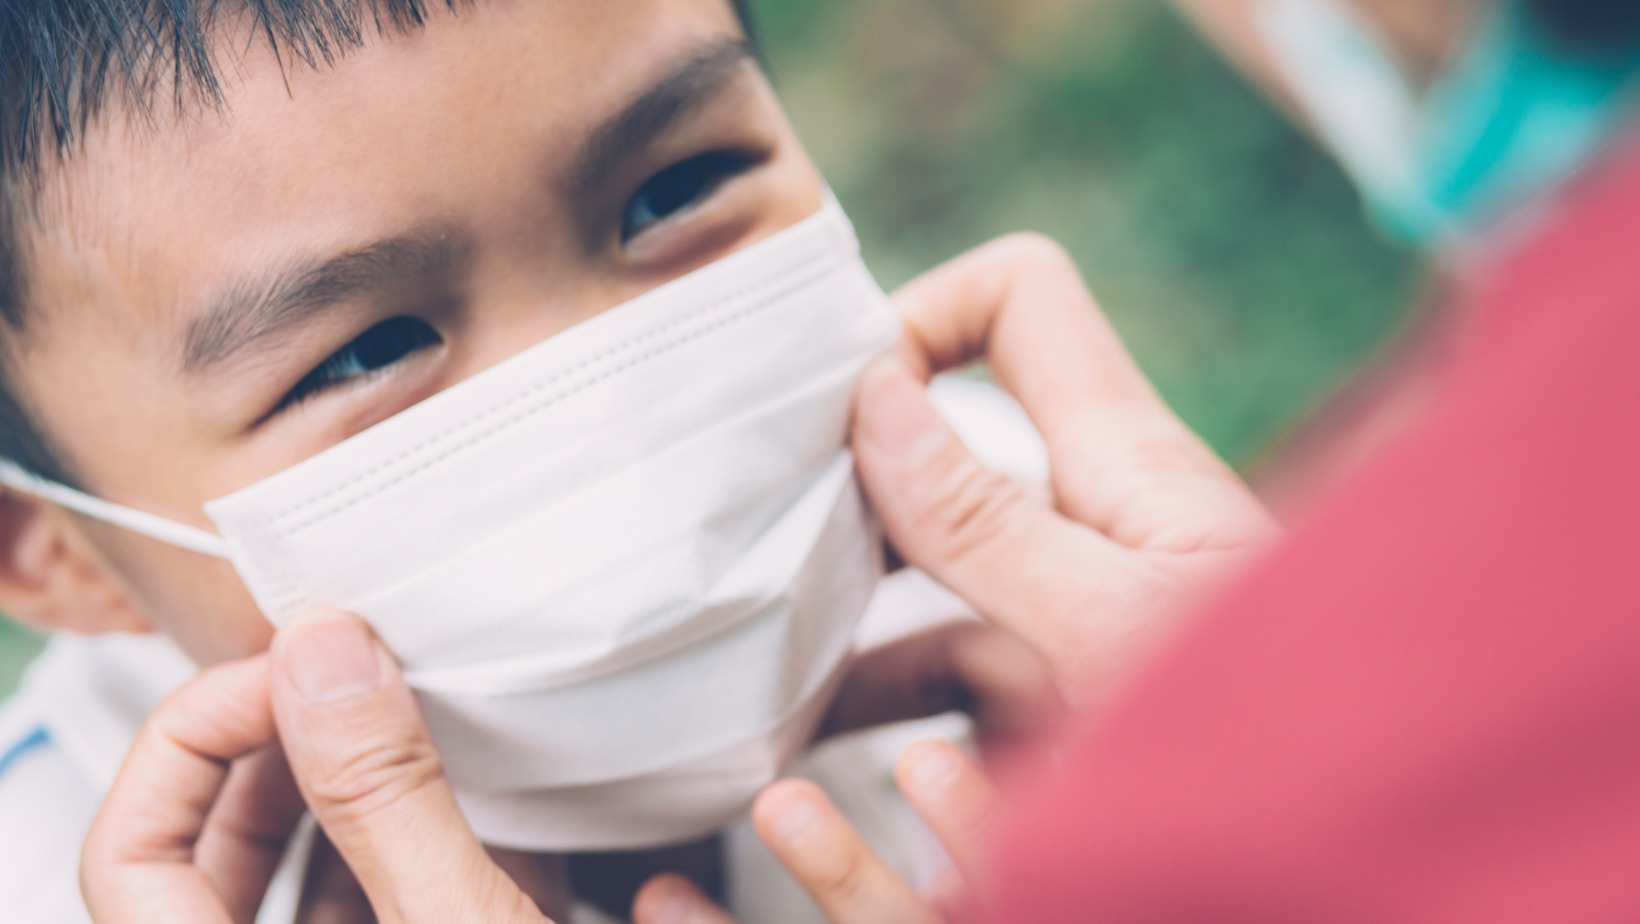 Residents of Brock, Scugog and Uxbridge asked to share their pandemic experience